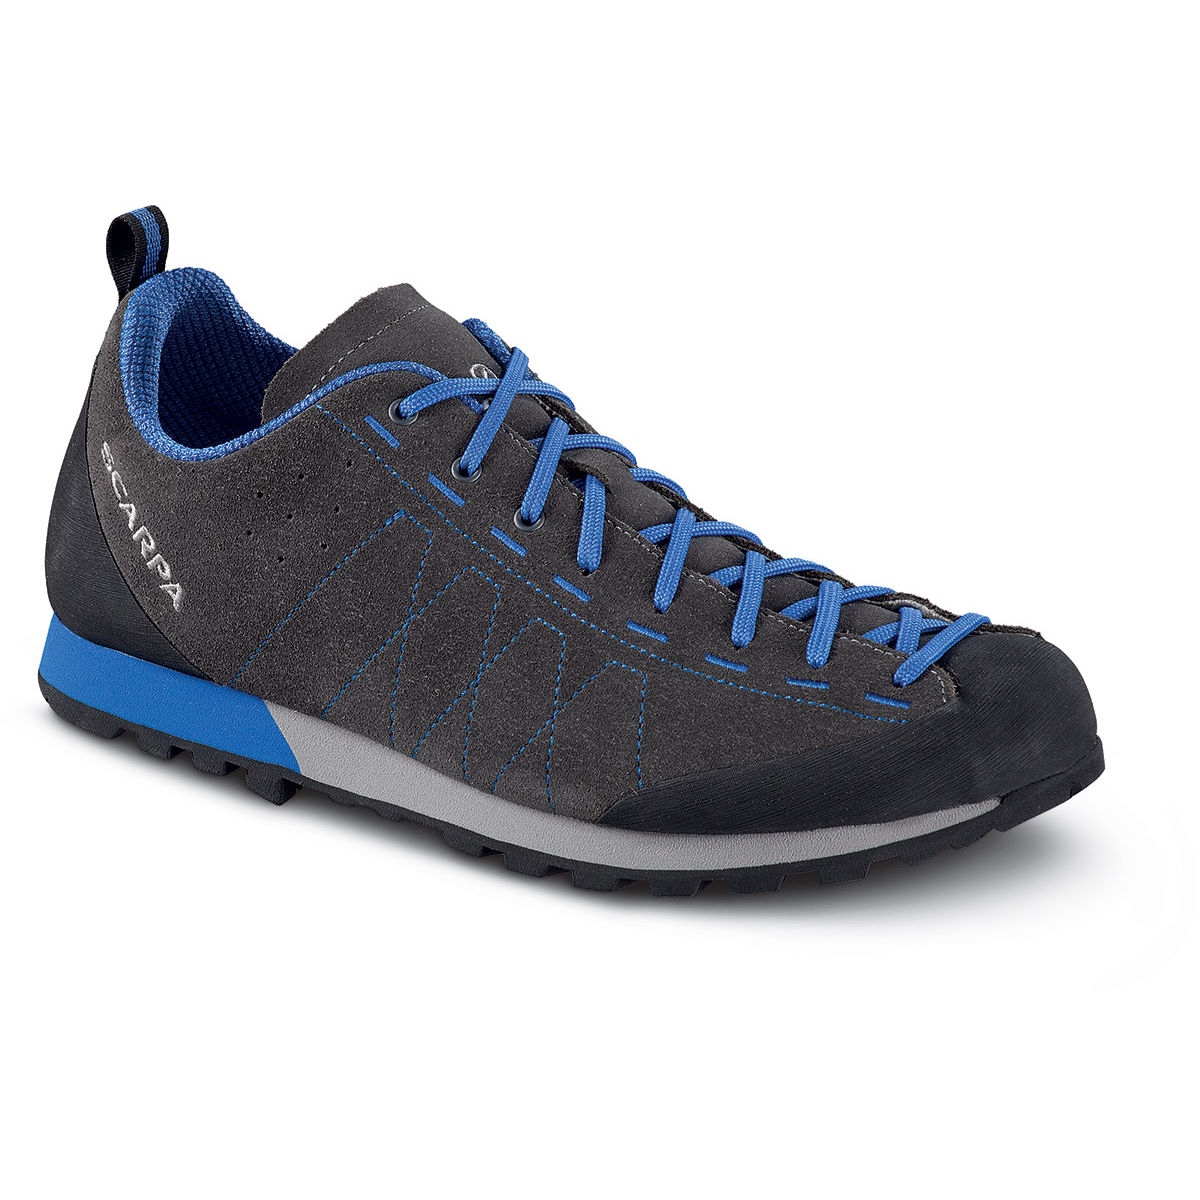 Scarpa Highball Shoes - Zapatillas